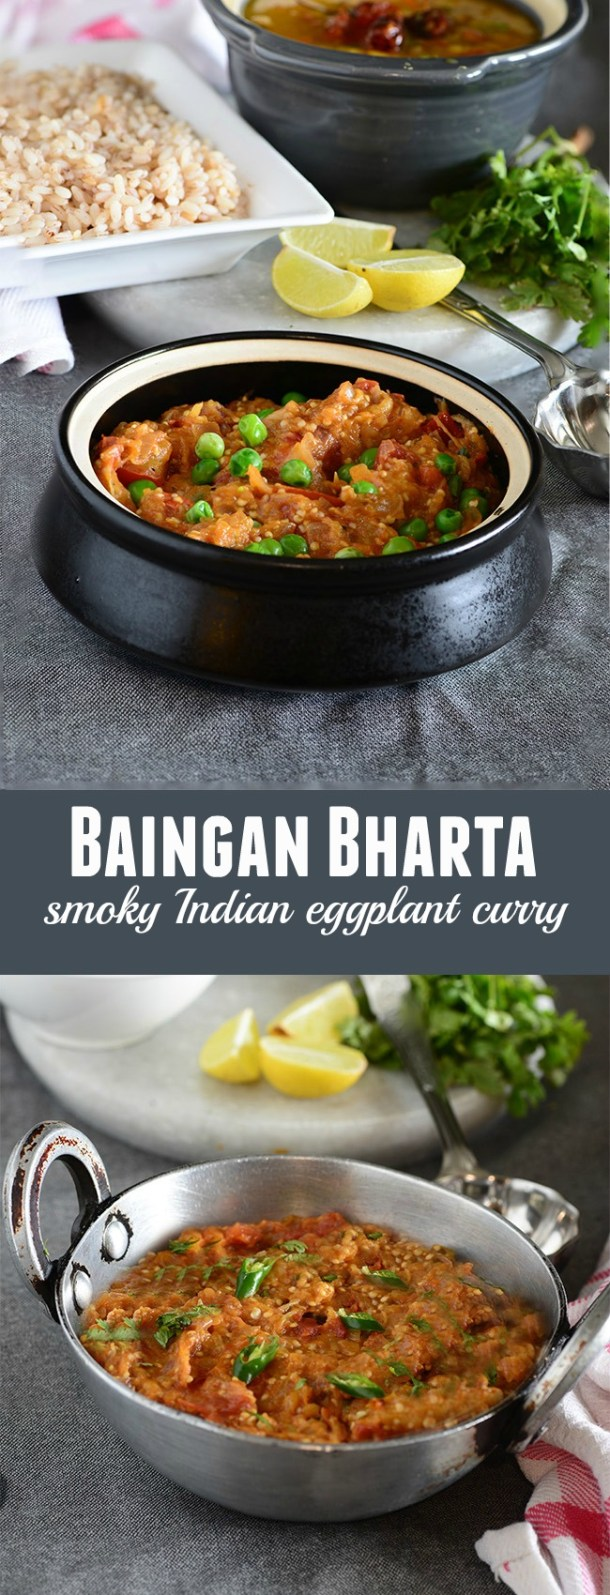 Baingan Bharta is a popular Punjabi recipe which is made with roasted eggplants cooked with onion tomatoes and richly flavored with spices. Eggplant or Baingan is roasted directly over flame till the skin of the eggplant is charred and easily peels off. Roasting over direct flame imparts a beautiful smoky flavor to baingan bharta